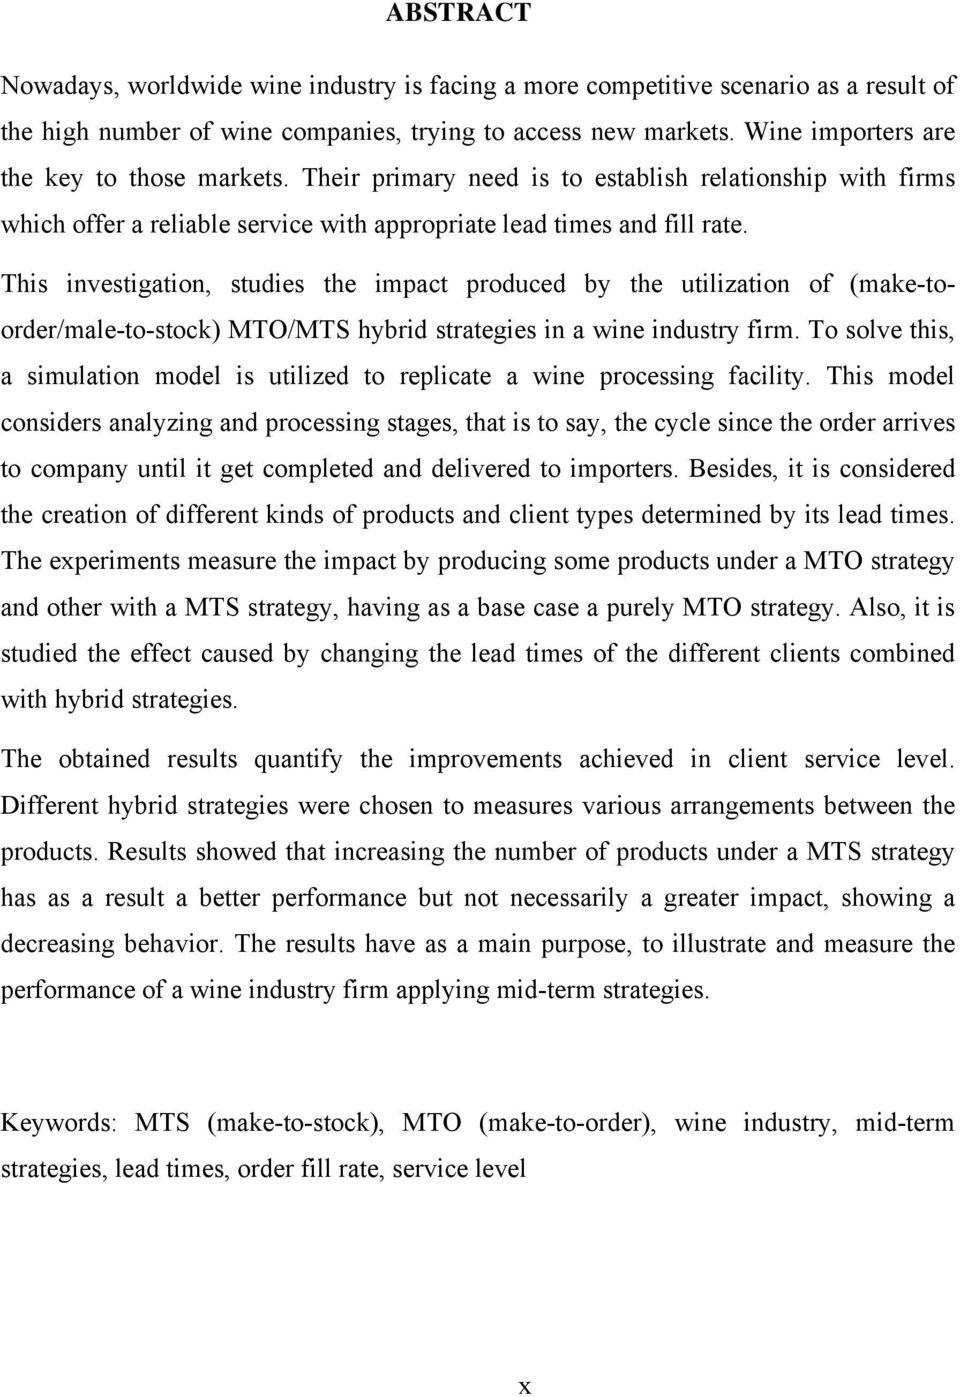 This investigation, studies the impact produced by the utilization of (make-toorder/male-to-stock) MTO/MTS hybrid strategies in a wine industry firm.